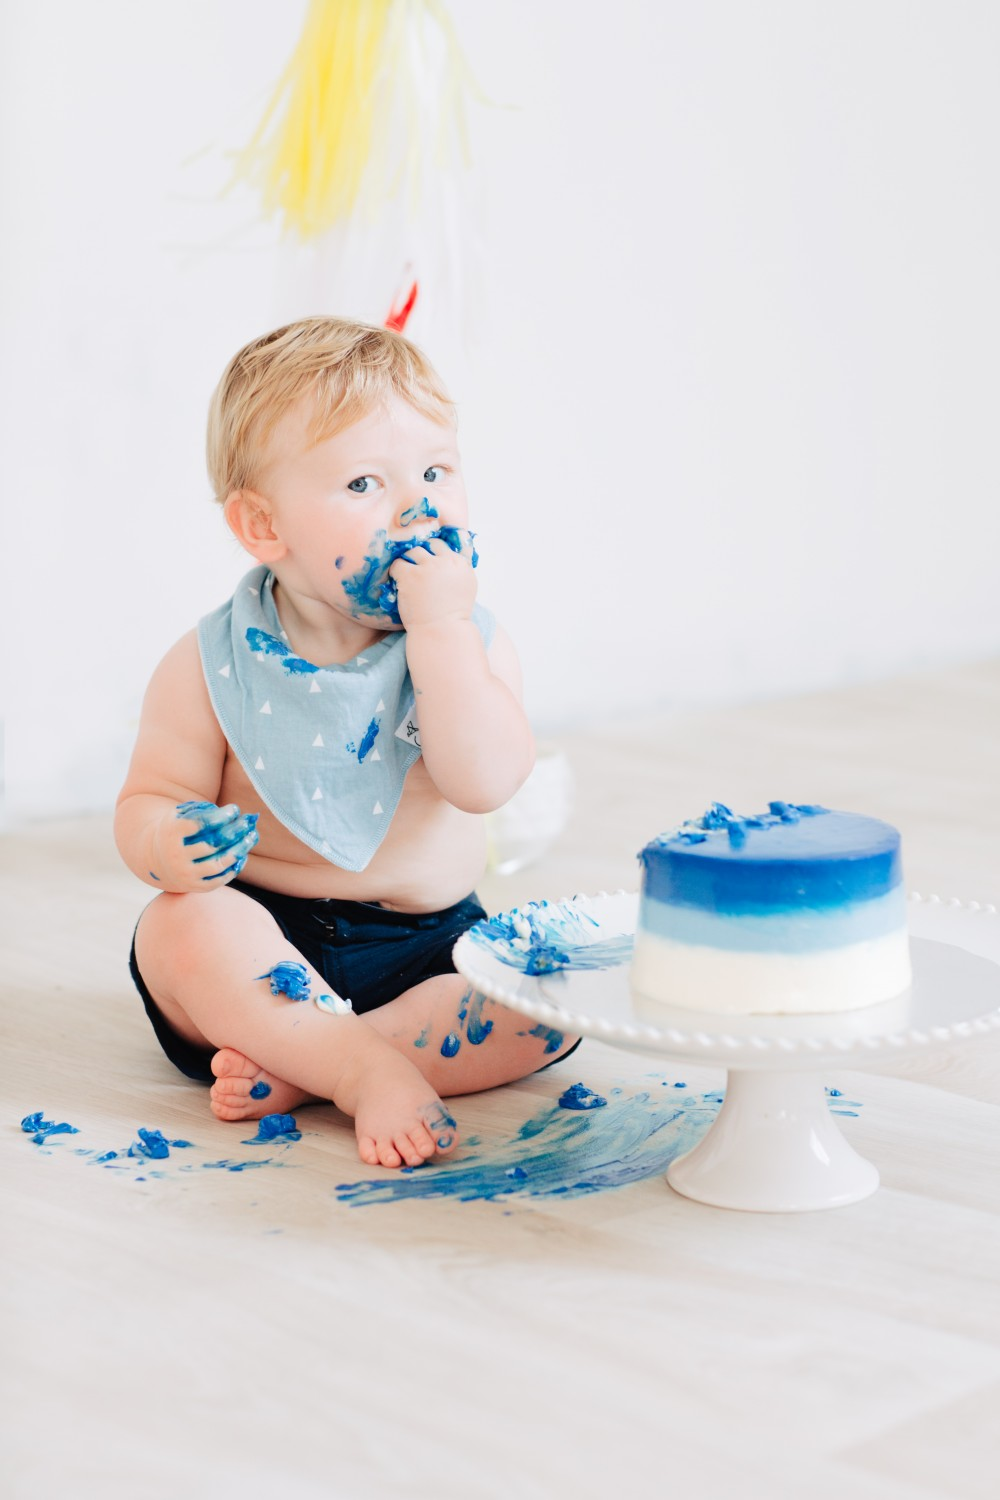 Mason's Turning One-Smash Cake Photoshoot-First Birthday-Smash Cake-First Birthday Photoshoot-Have Need Want 15